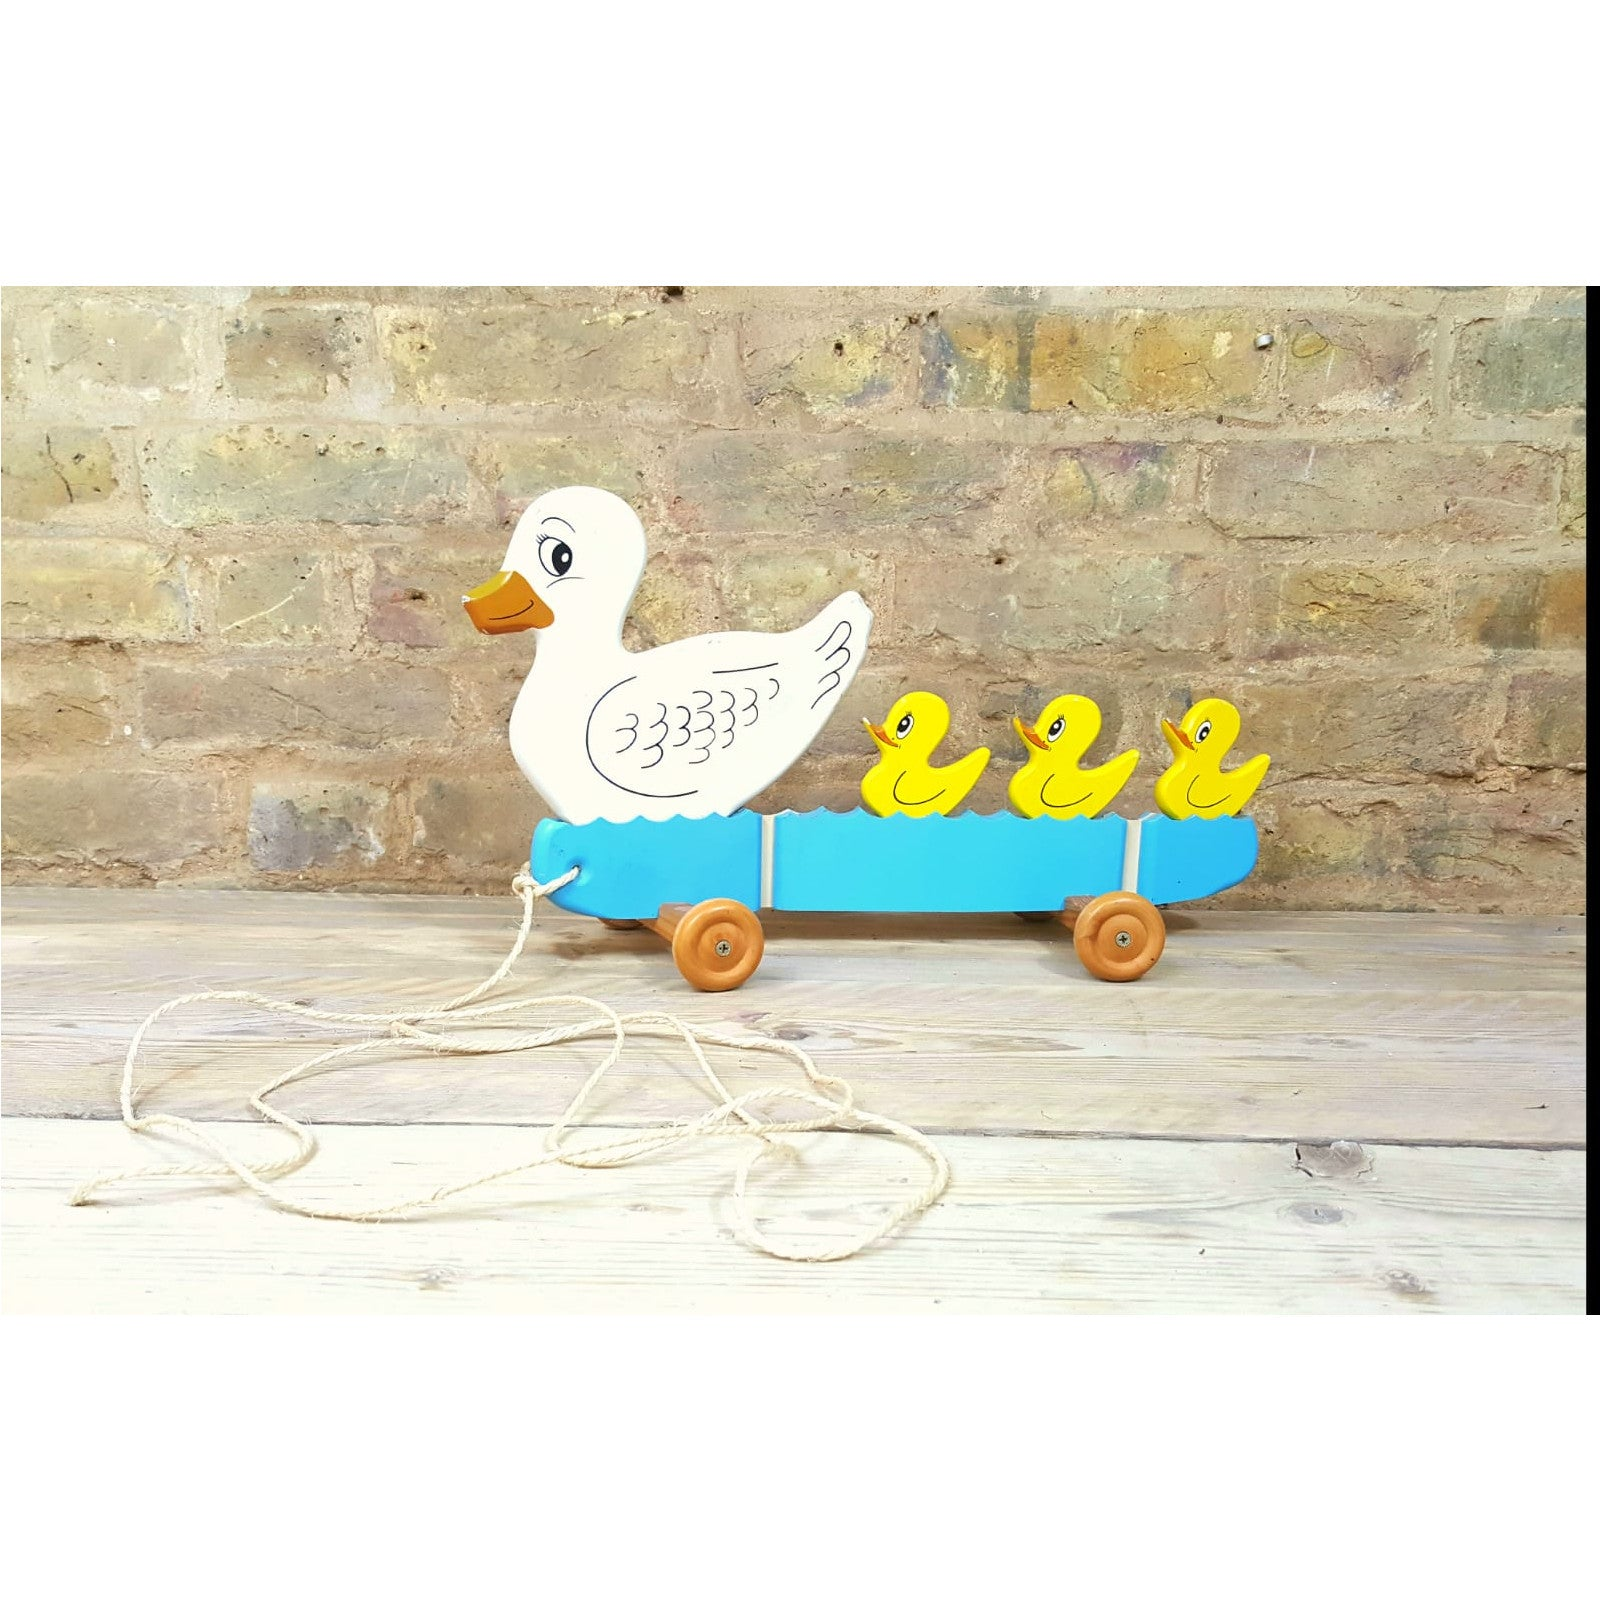 Pull-along wooden duck toy - Junk Art Design @junkartdesign www.junkartdesign.co.uk